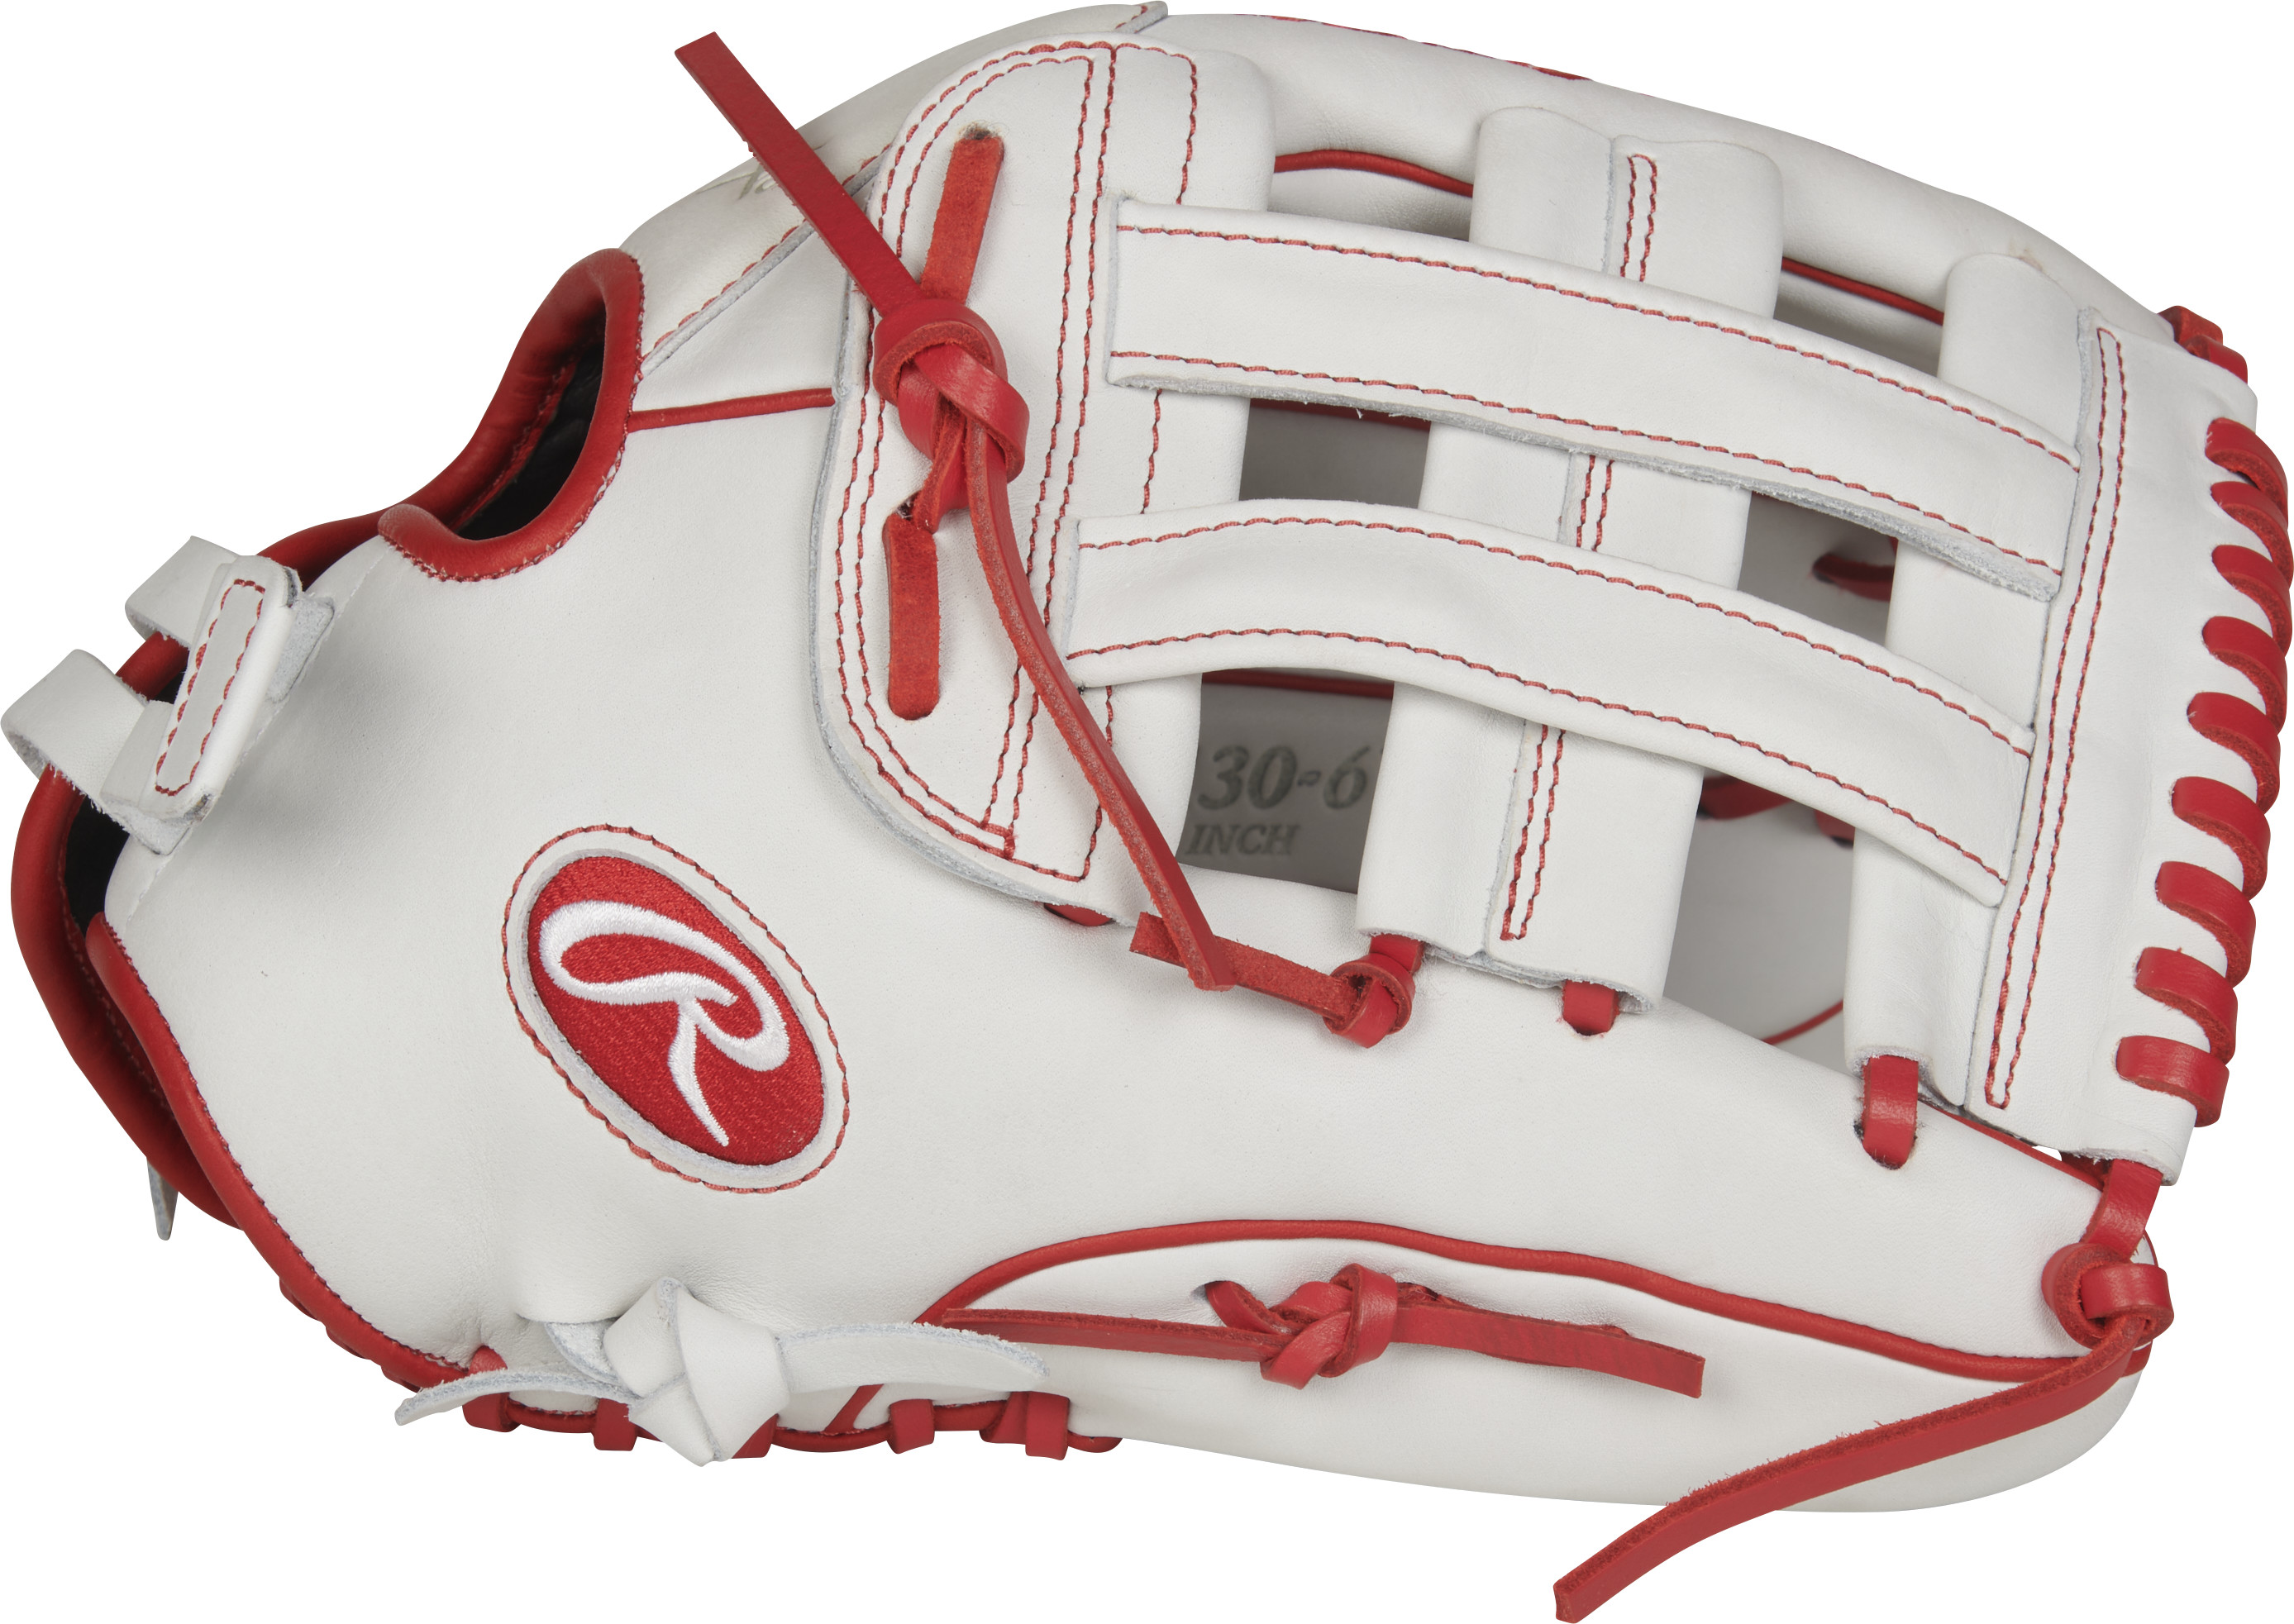 http://www.bestbatdeals.com/images/gloves/rawlings/RLA130-6W-3.jpg